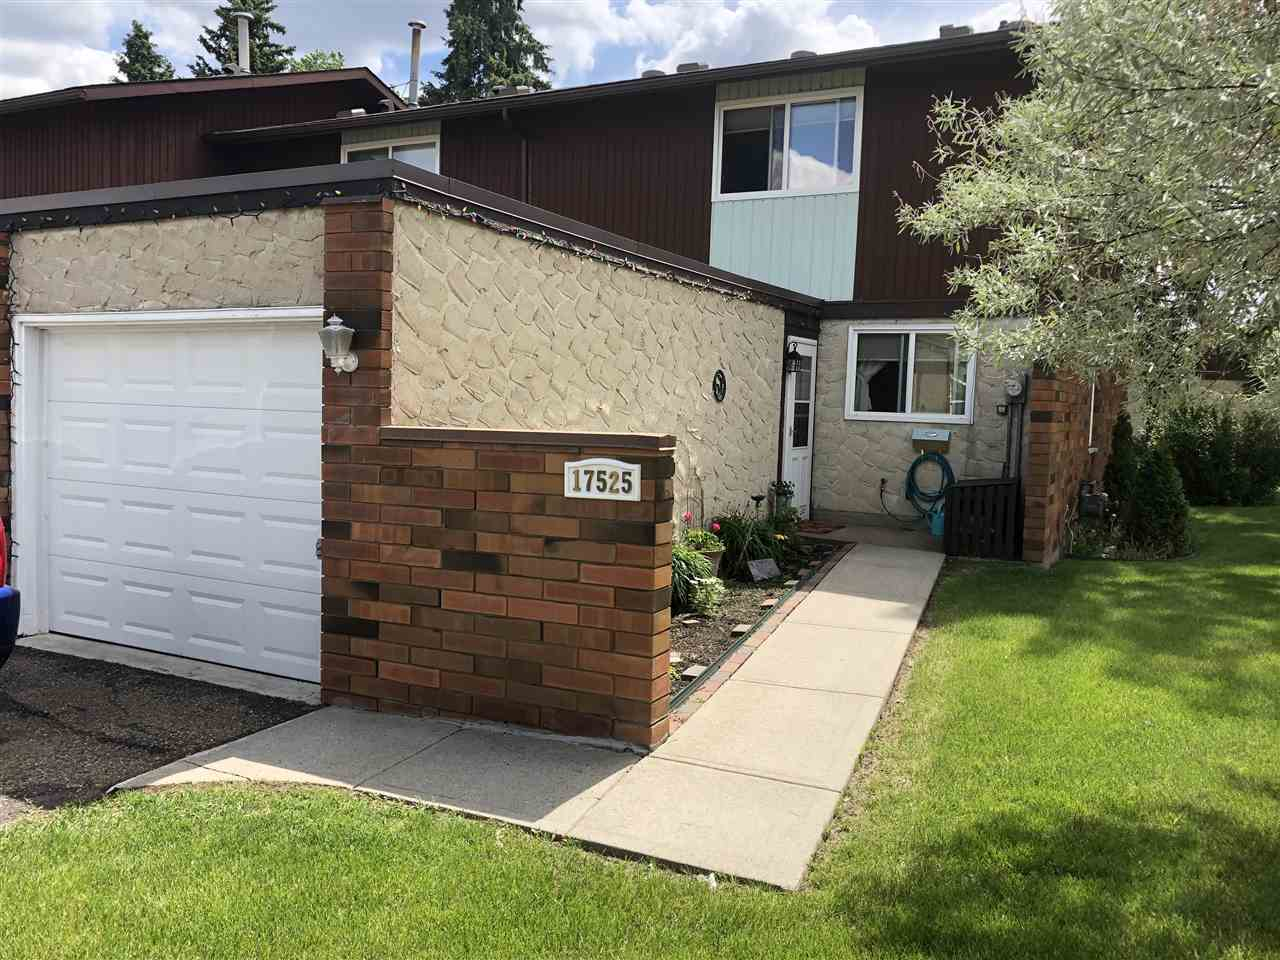 MLS® listing #E4172814 for sale located at 17525 77 Avenue